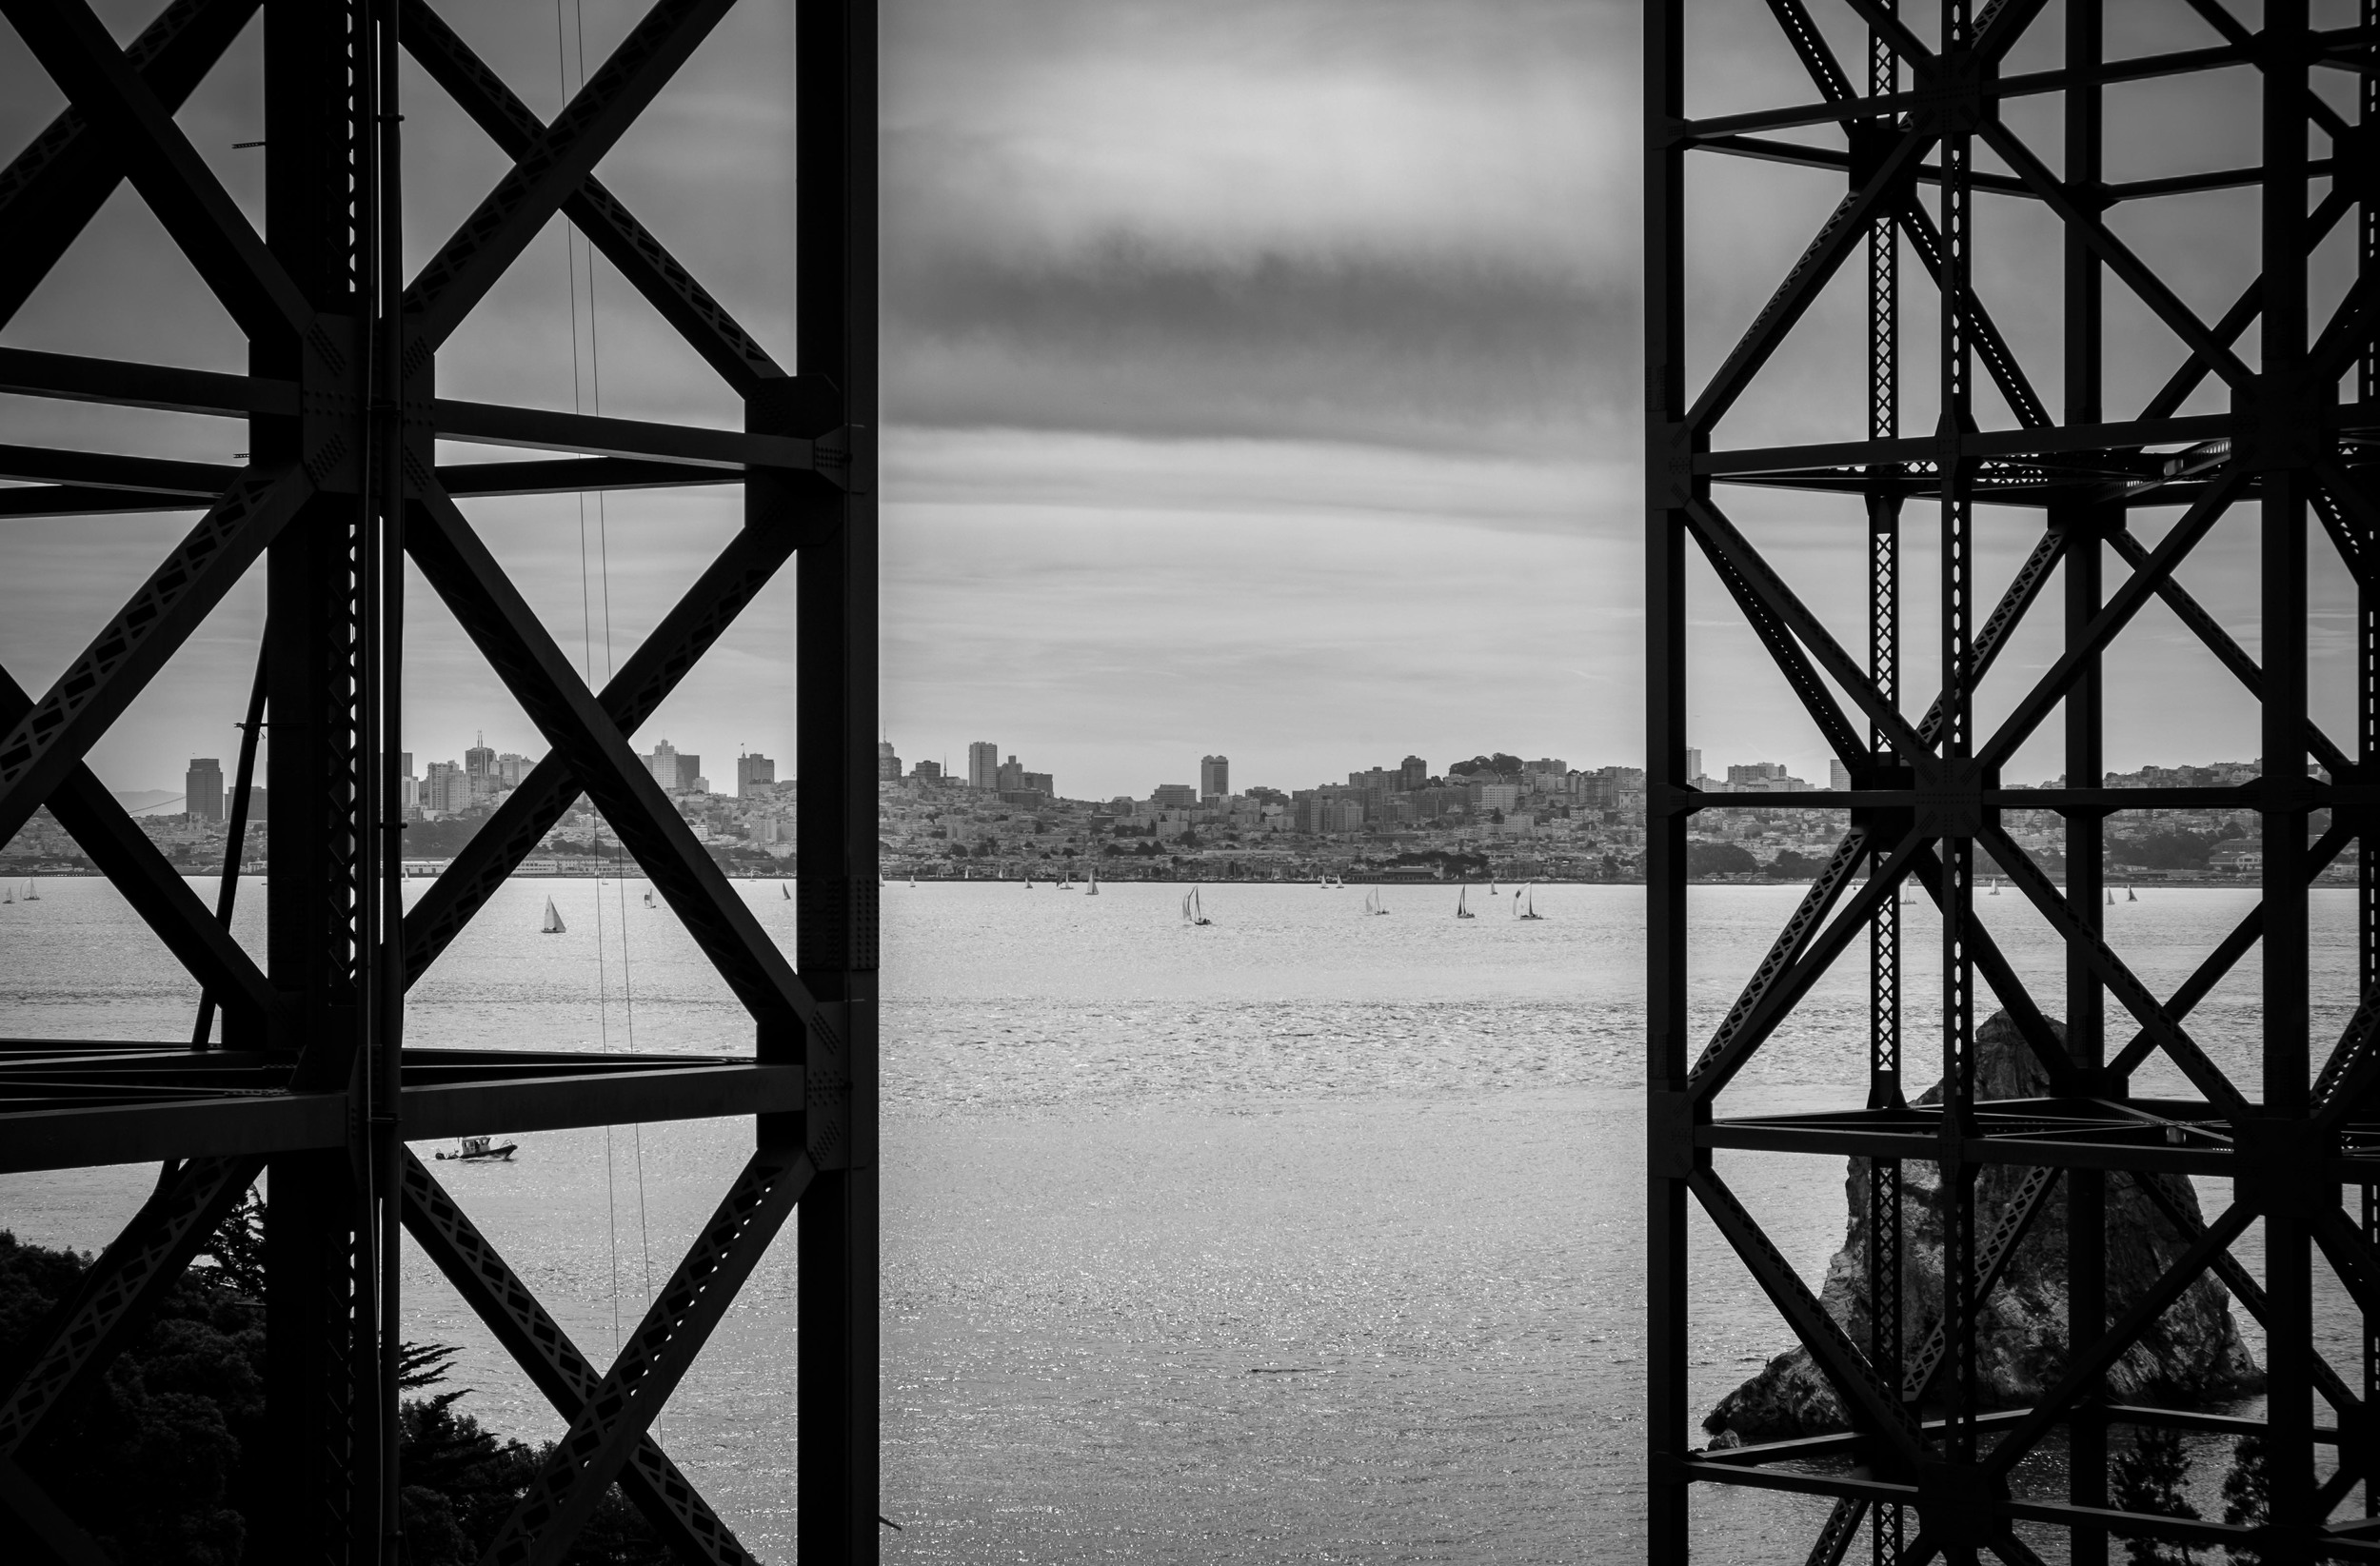 Think about details and capturing pieces of the bridge, even from underneath. This was taken while walking from the Coast Guard station up the hill to the Vista Point parking area. 1/350 @ f9, ISO 200.